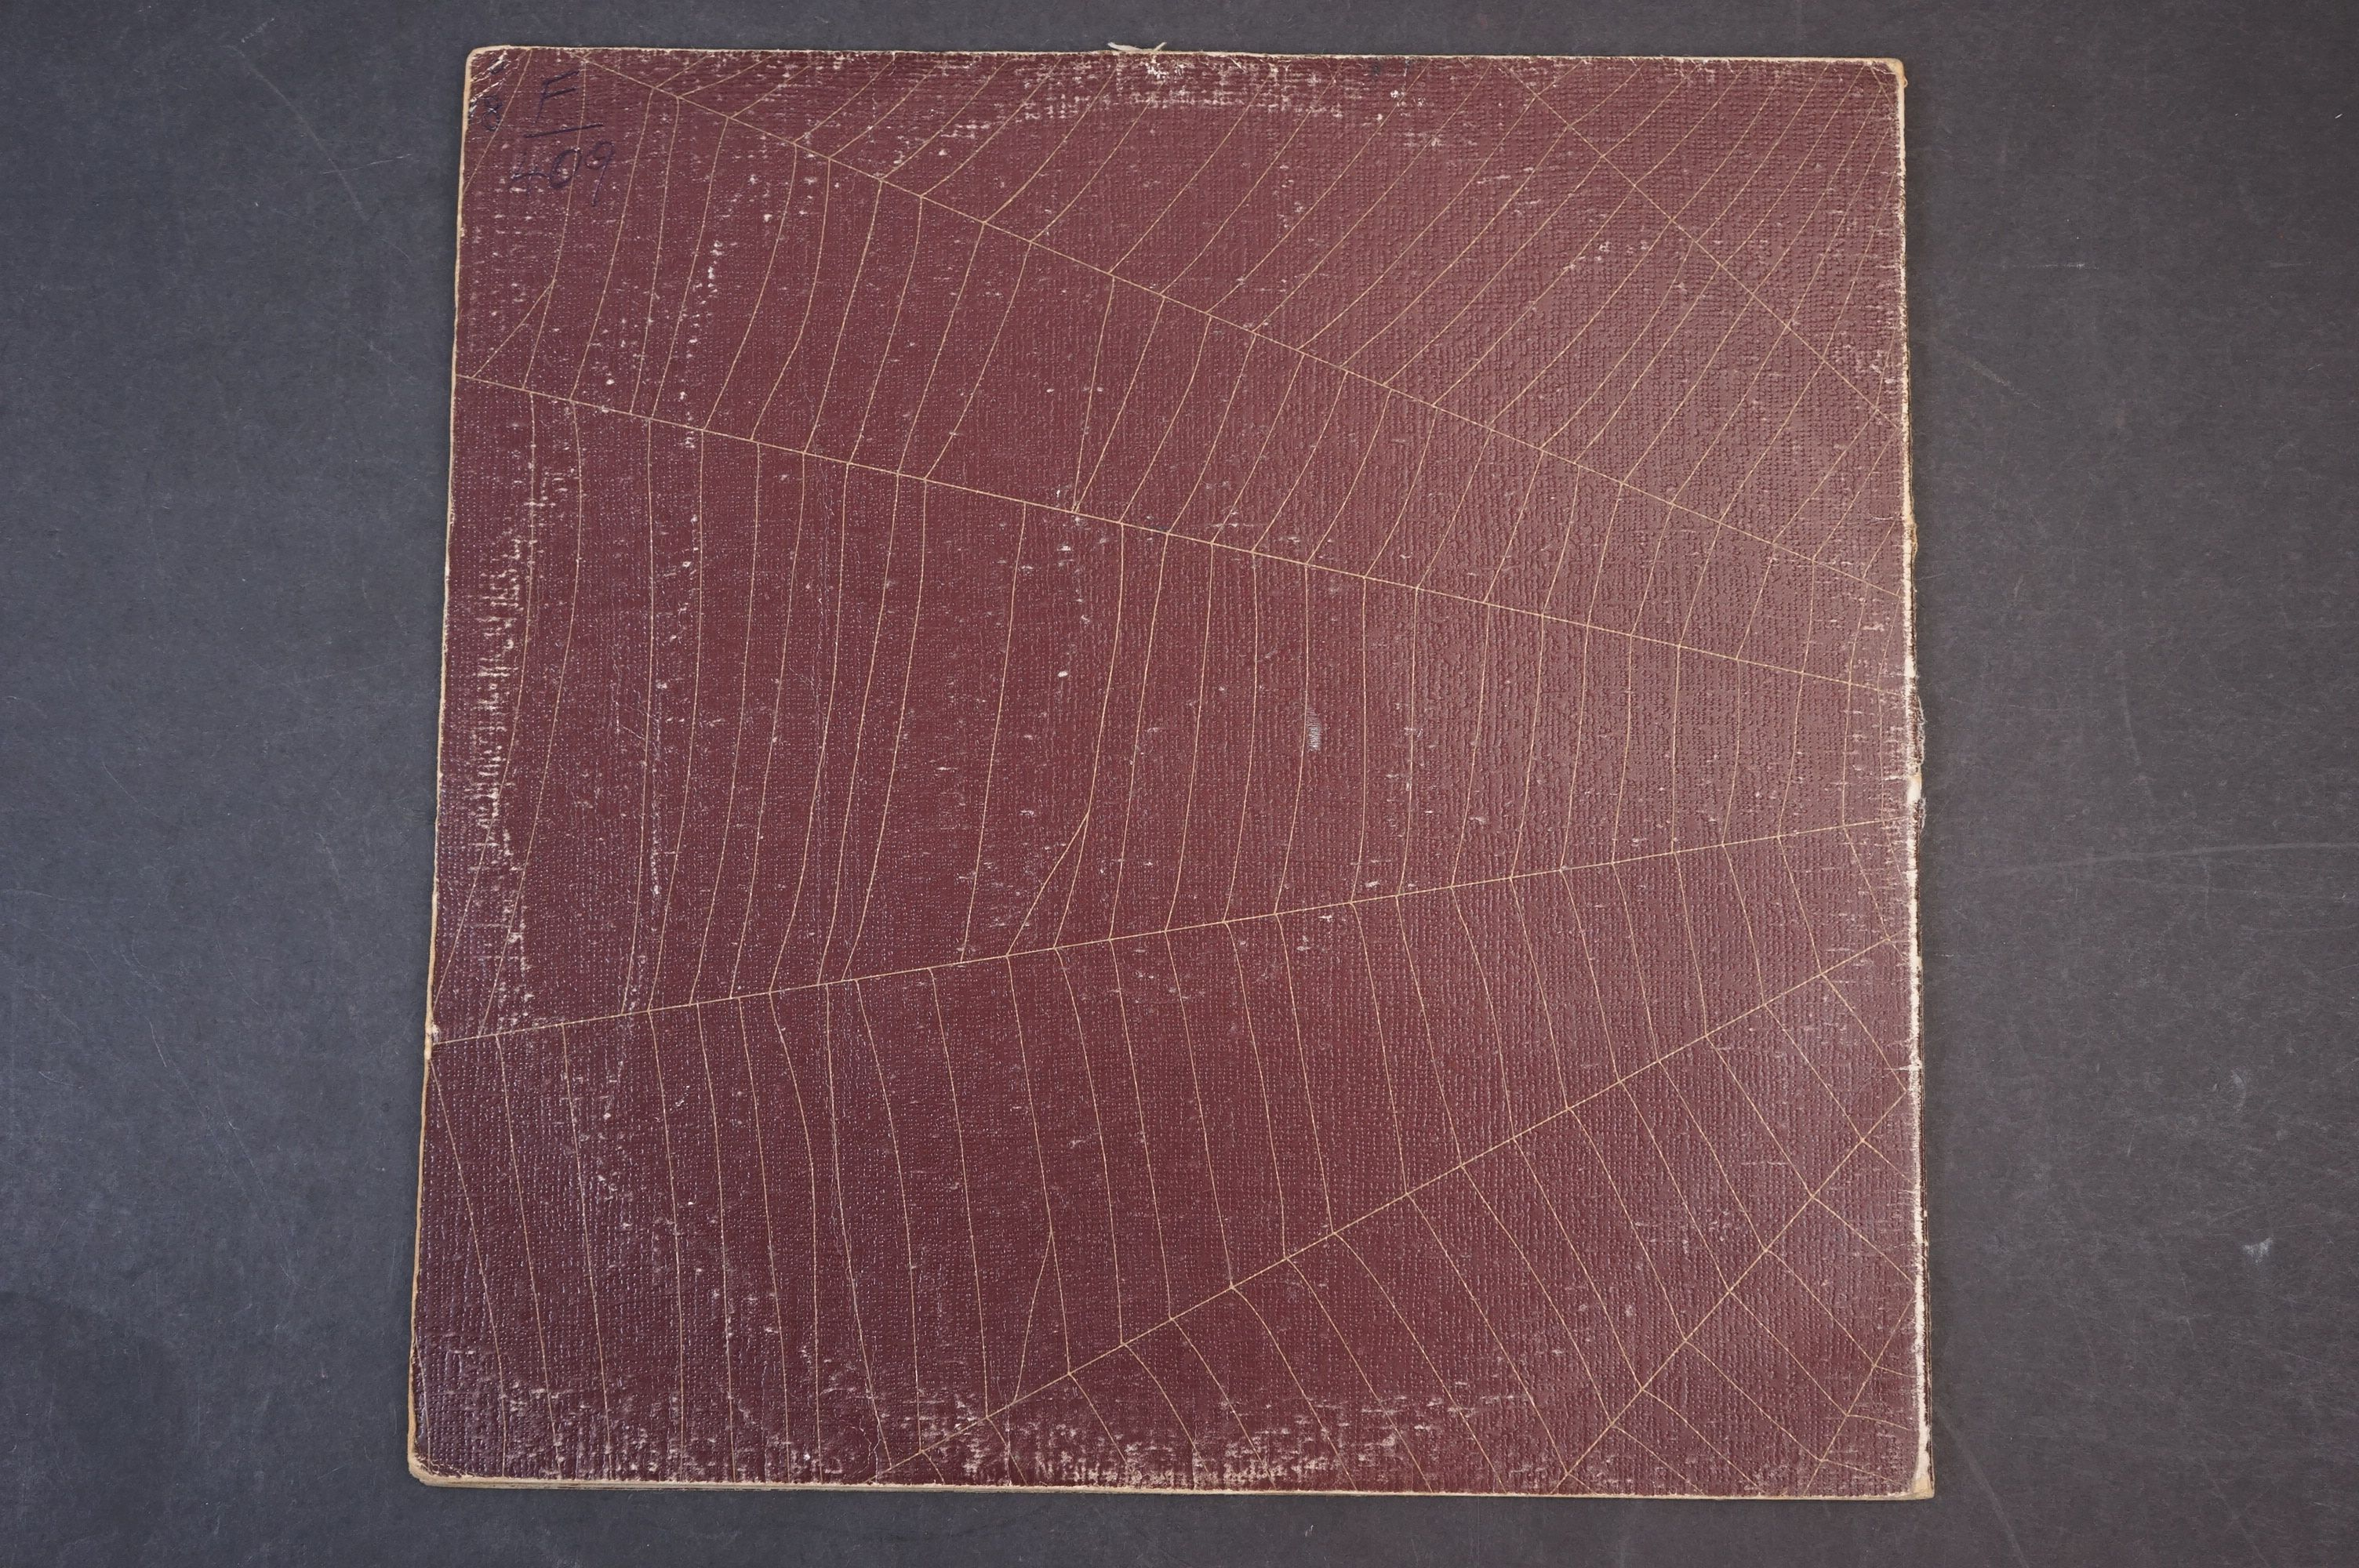 Vinyl - 9.30 Fly self titled LP on Ember NR5062 stereo, textured gatefold sleeve, writing to - Image 3 of 7